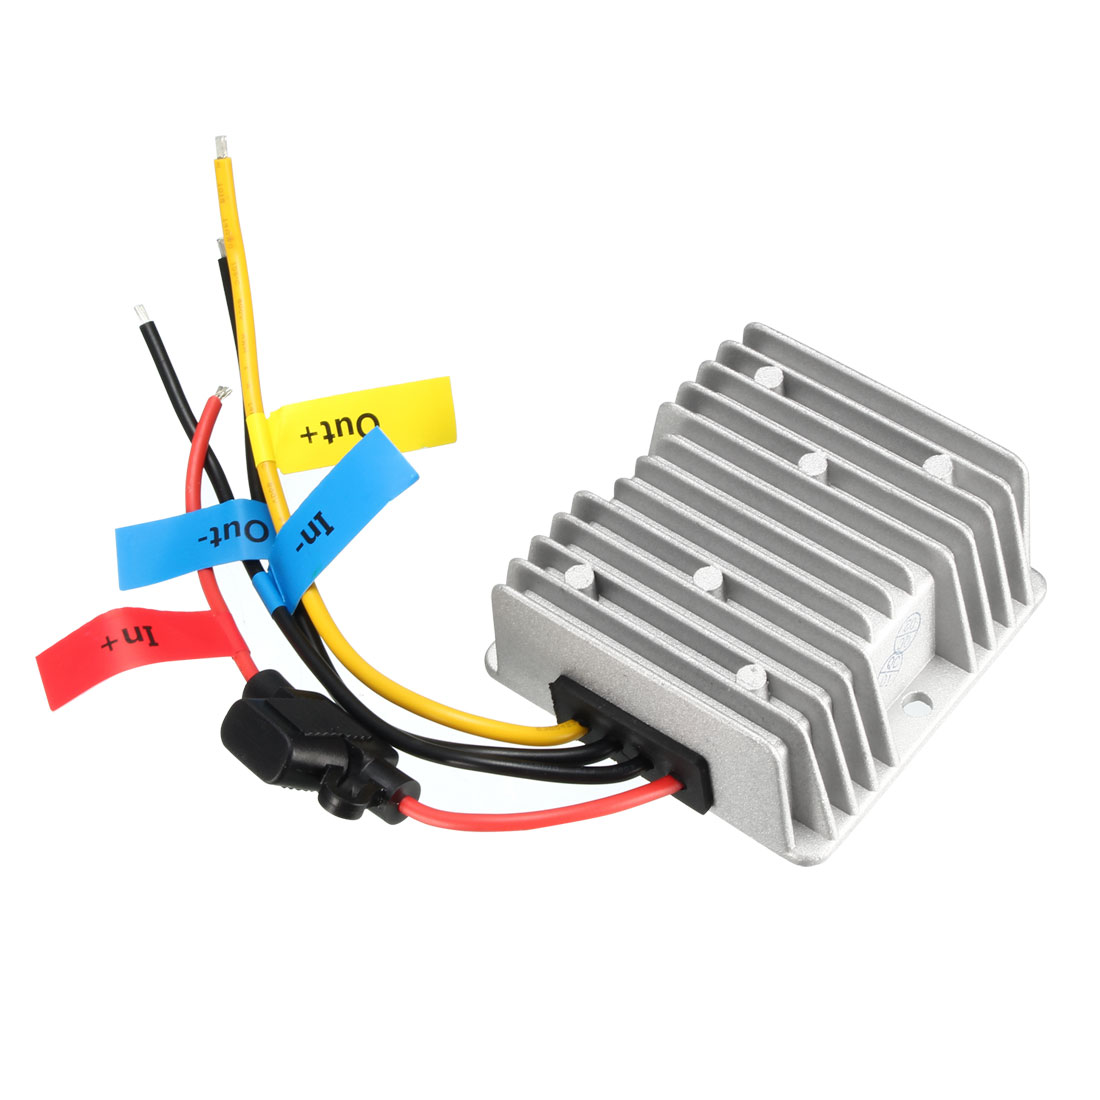 DC 24V(15V~40V) to DC 12V 20A 240W Power Converter Regulator Waterproof Electronic Transformer